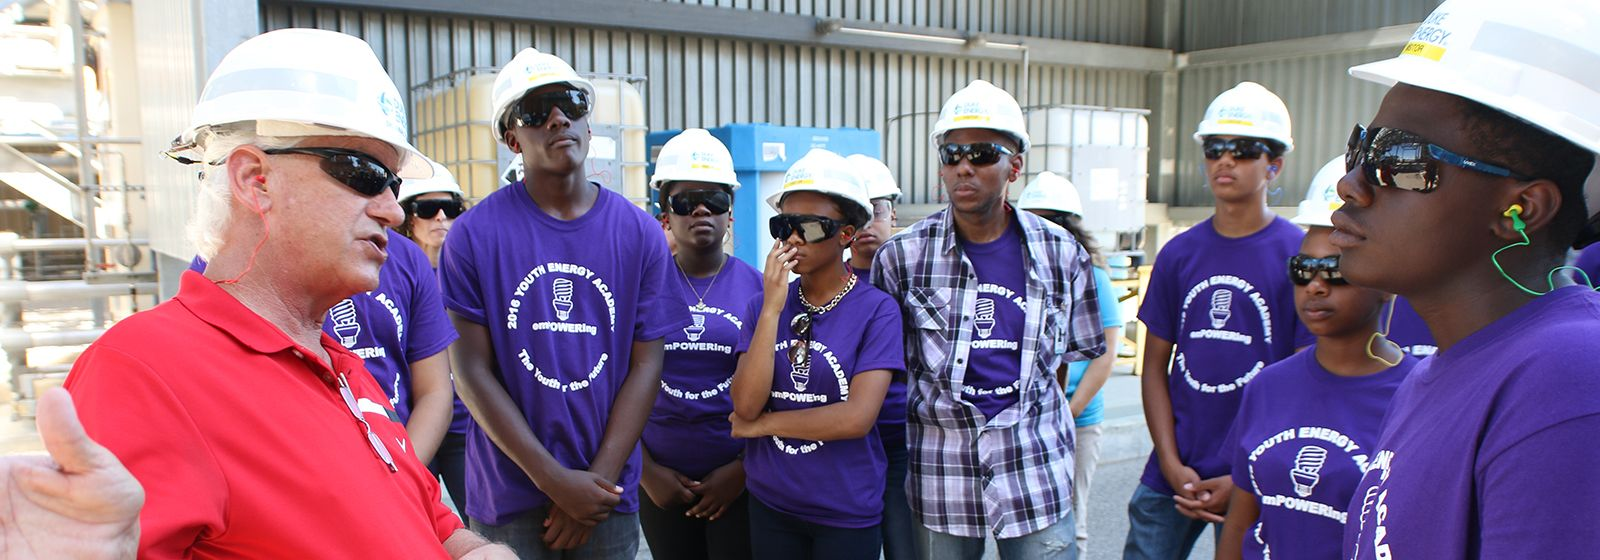 Video: Fla. teens learn about STEM careers at Youth Energy Academy